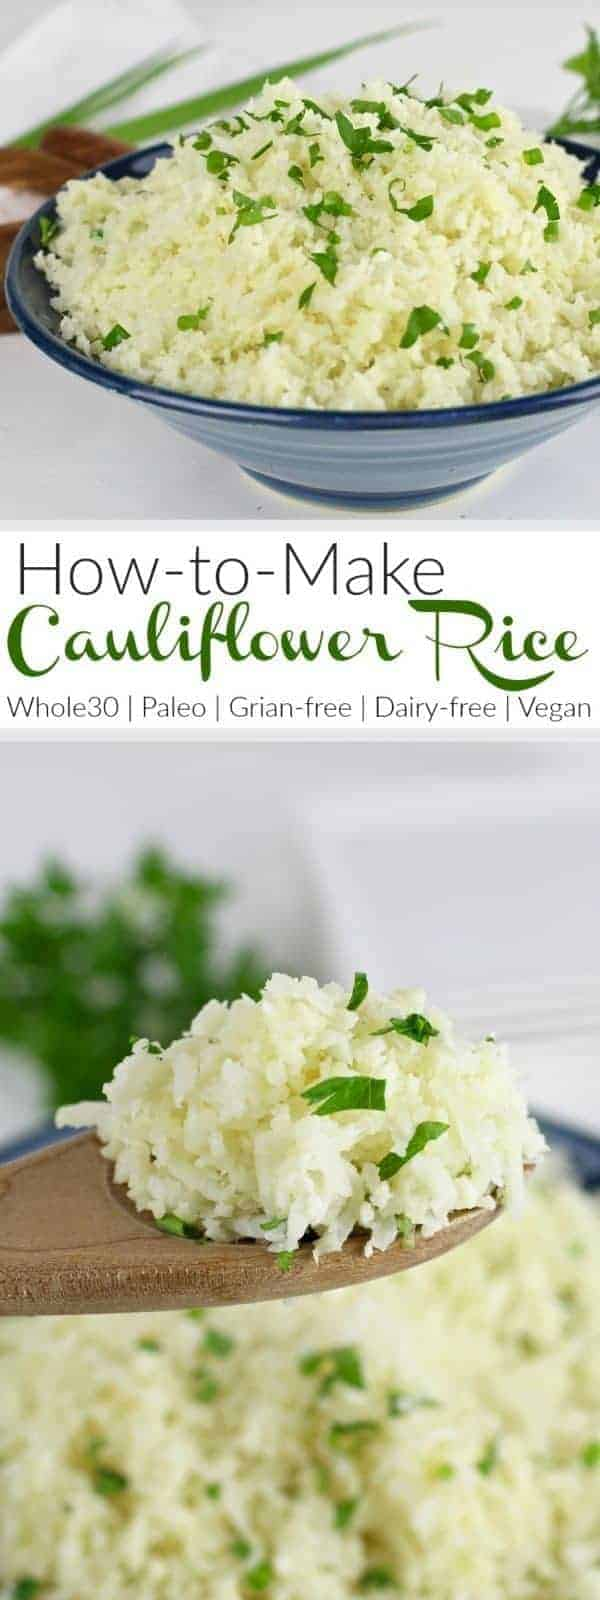 How To Make Cauliflower Rice: A step-by-step photo tutorial  how to cook cauliflower rice | cauliflower rice recipes | whole30 side dishes | gluten-free side dishes | dairy-free side dishes | vegan side dishes | paleo side dishes | gluten-free cauliflower rice | whole30 recipe ideas || The Real Food Dietitians #whole30recipes #cauliflowerrice